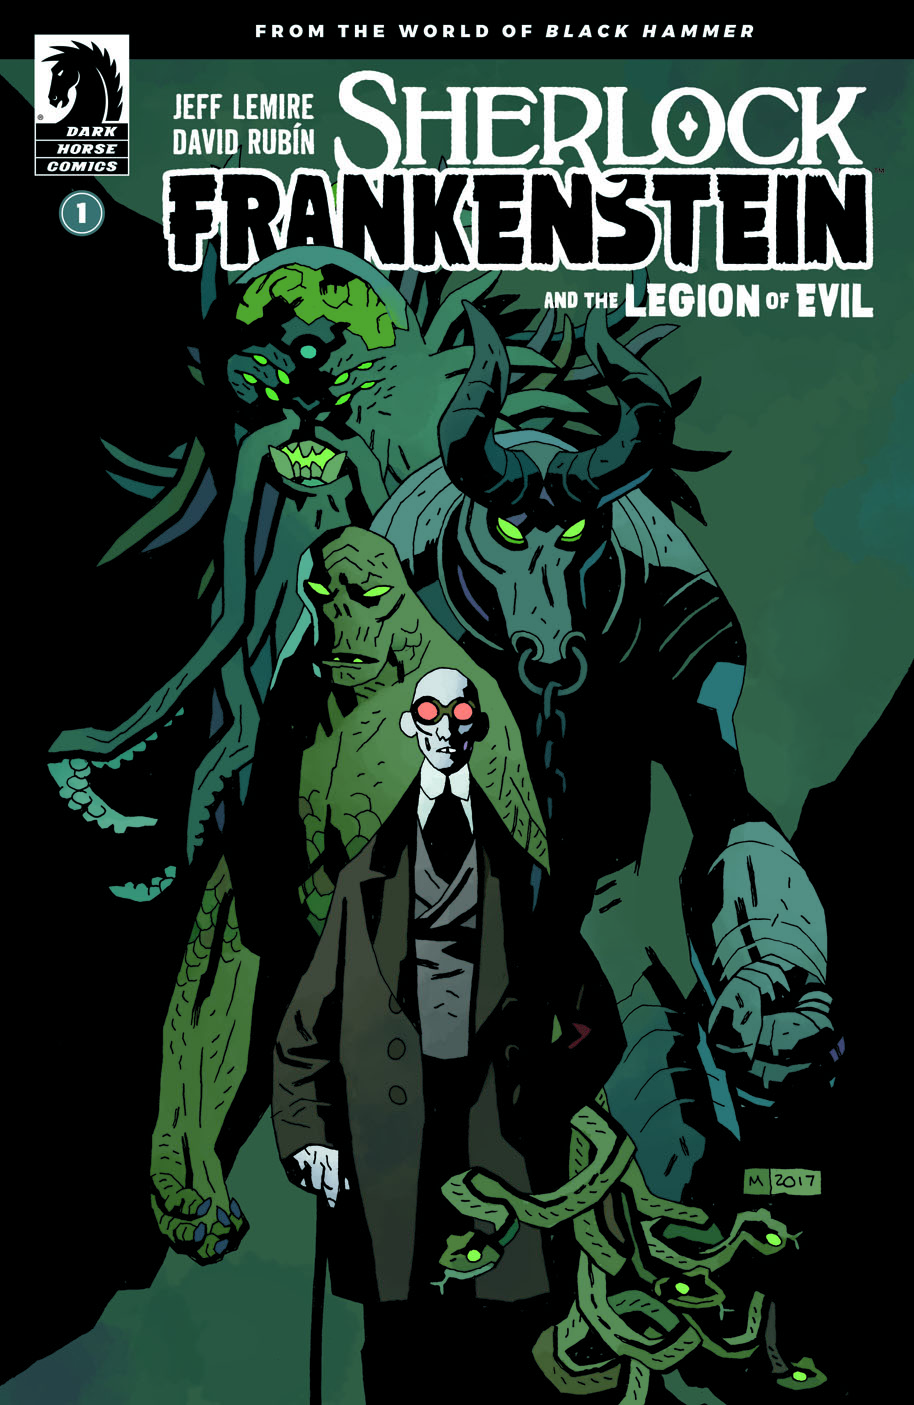 Sherlock Frankenstein and the Legion of Evil 1 Mike Mignola cover